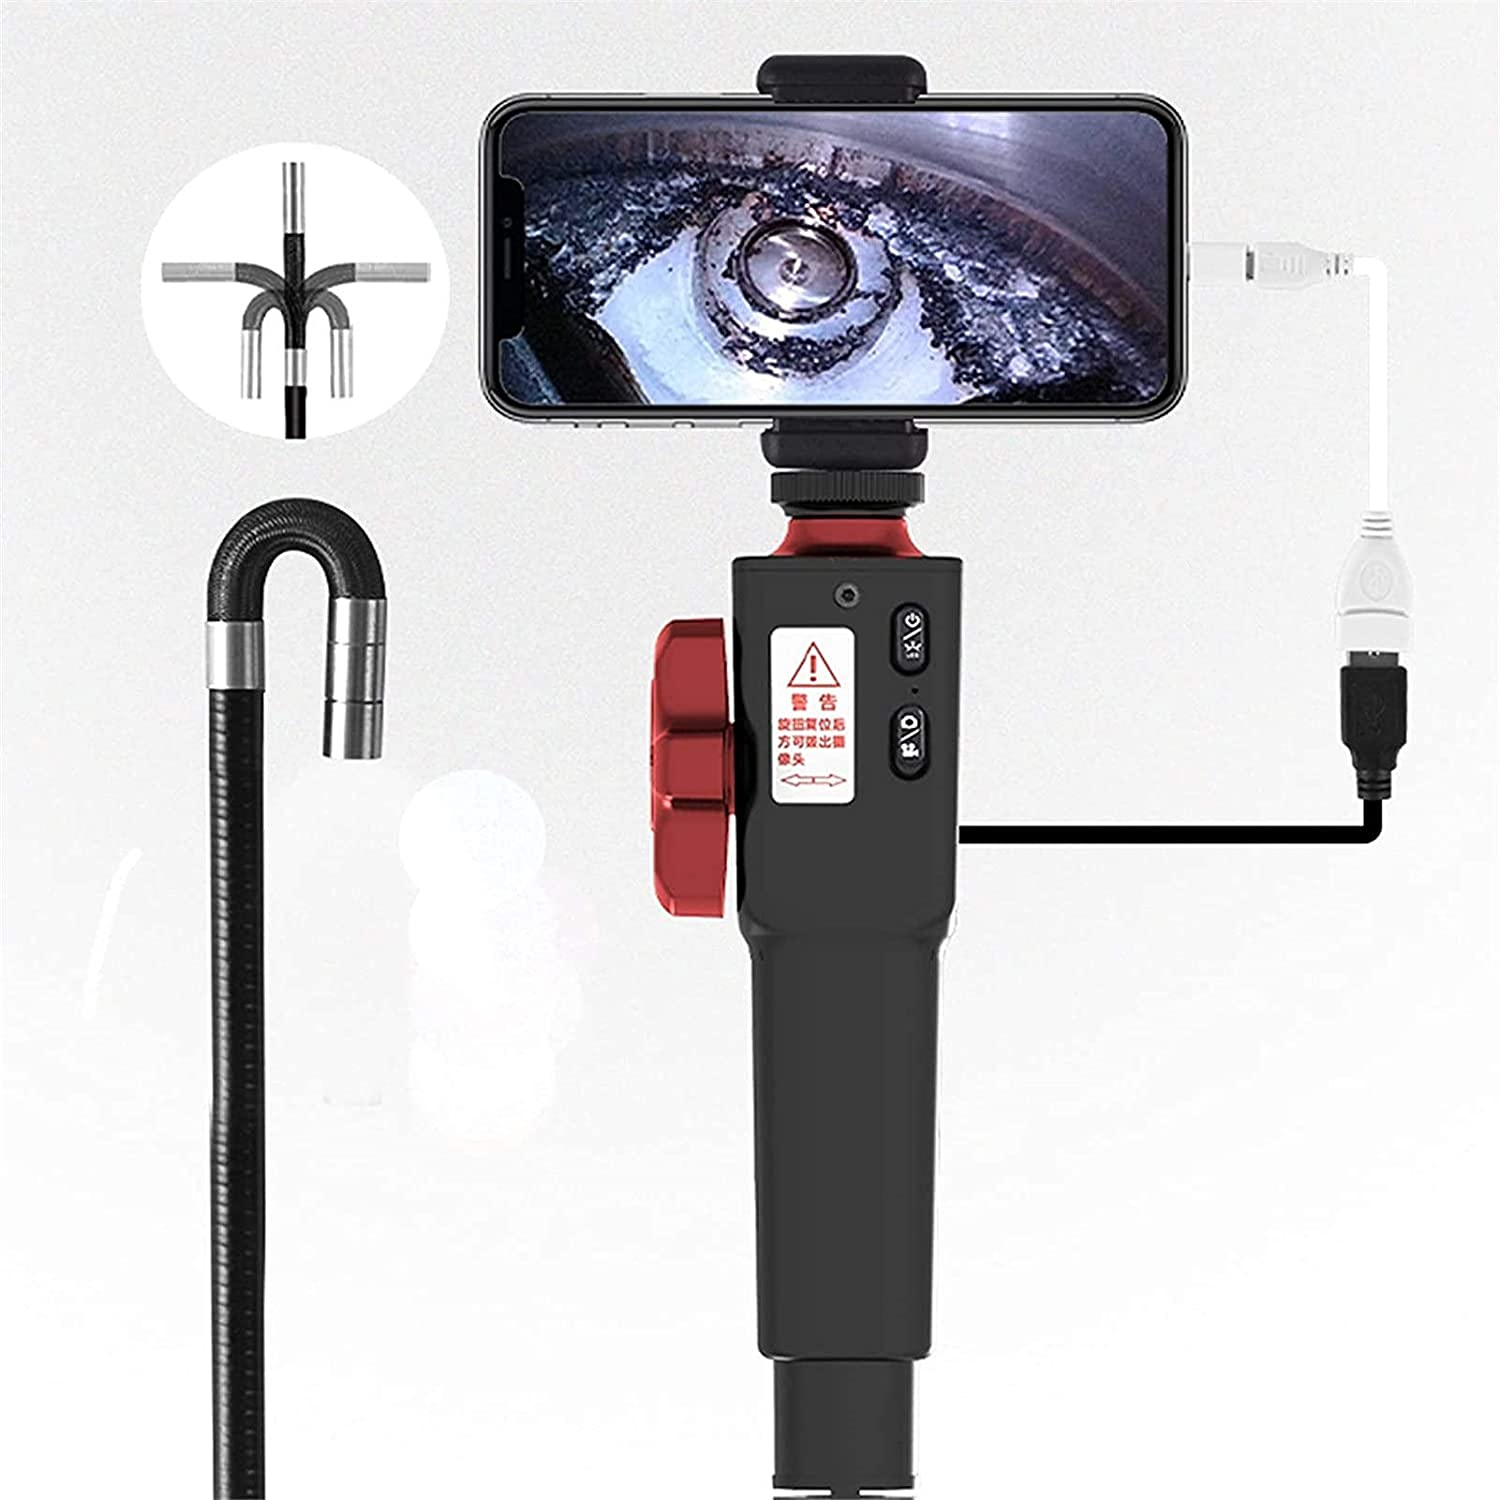 360 Degree Steering Industrial Borescope Endoscope Automobile Car Pipe Inspection Camera for OTG Android Phone WIFI iOS